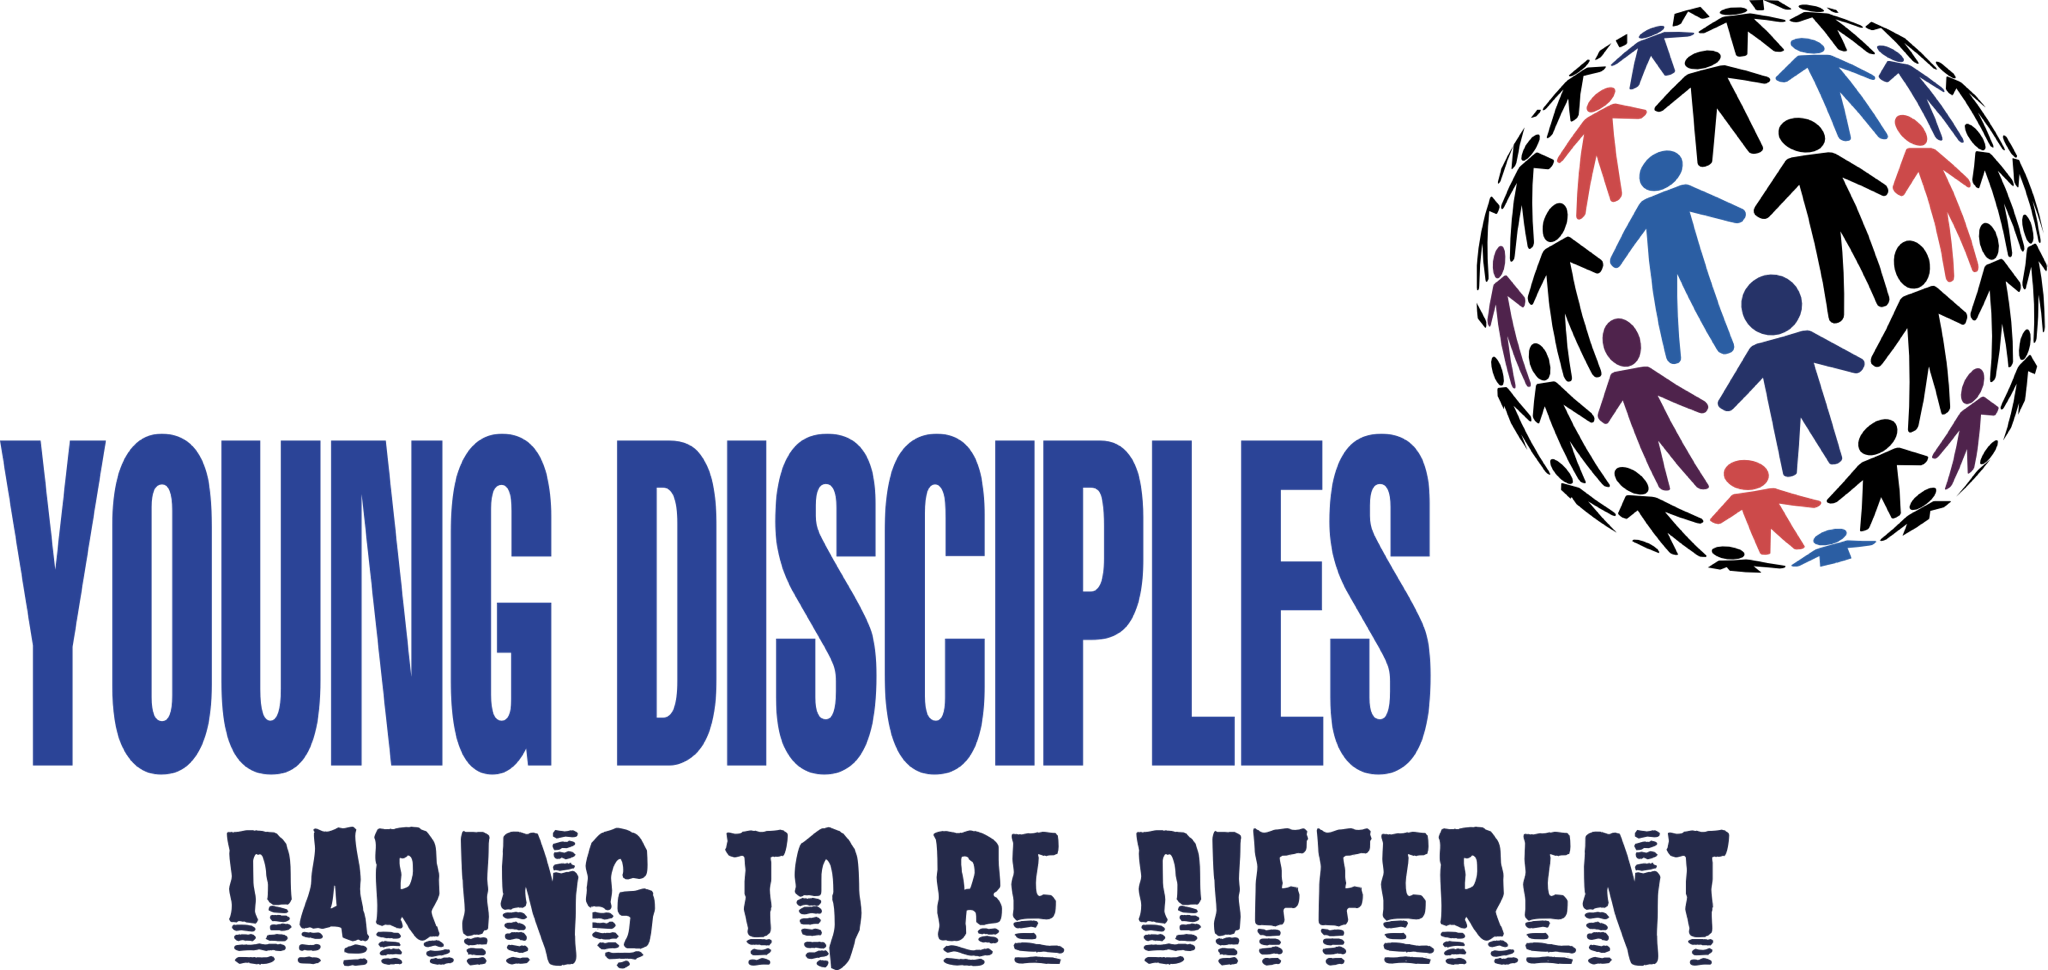 "Our Young Disciples Ministry purpose is to provide a biblical foundation for our teens while equipping them with the tools they'll need to combat the unique temptations their generation faces on a daily basis. Every born again believer, no matter the age, should be able to defend their faith, and explain what they believe and why they believe it. As instructors it is our responsibility to guide them to these truths. We motto our ministry on the words of Solomon, as he writes in Ecclesiates 12:1 ""Remember your creator in the days of your youth, before the days of trouble come and the years approach when you will say, I find no pleasure in them."" We encourage and help young people discover God's purpose for them, because we firmly believe, no matter how young or old you are, God has a purpose, a mission for your life! We seek to escort them along their path of discovery."